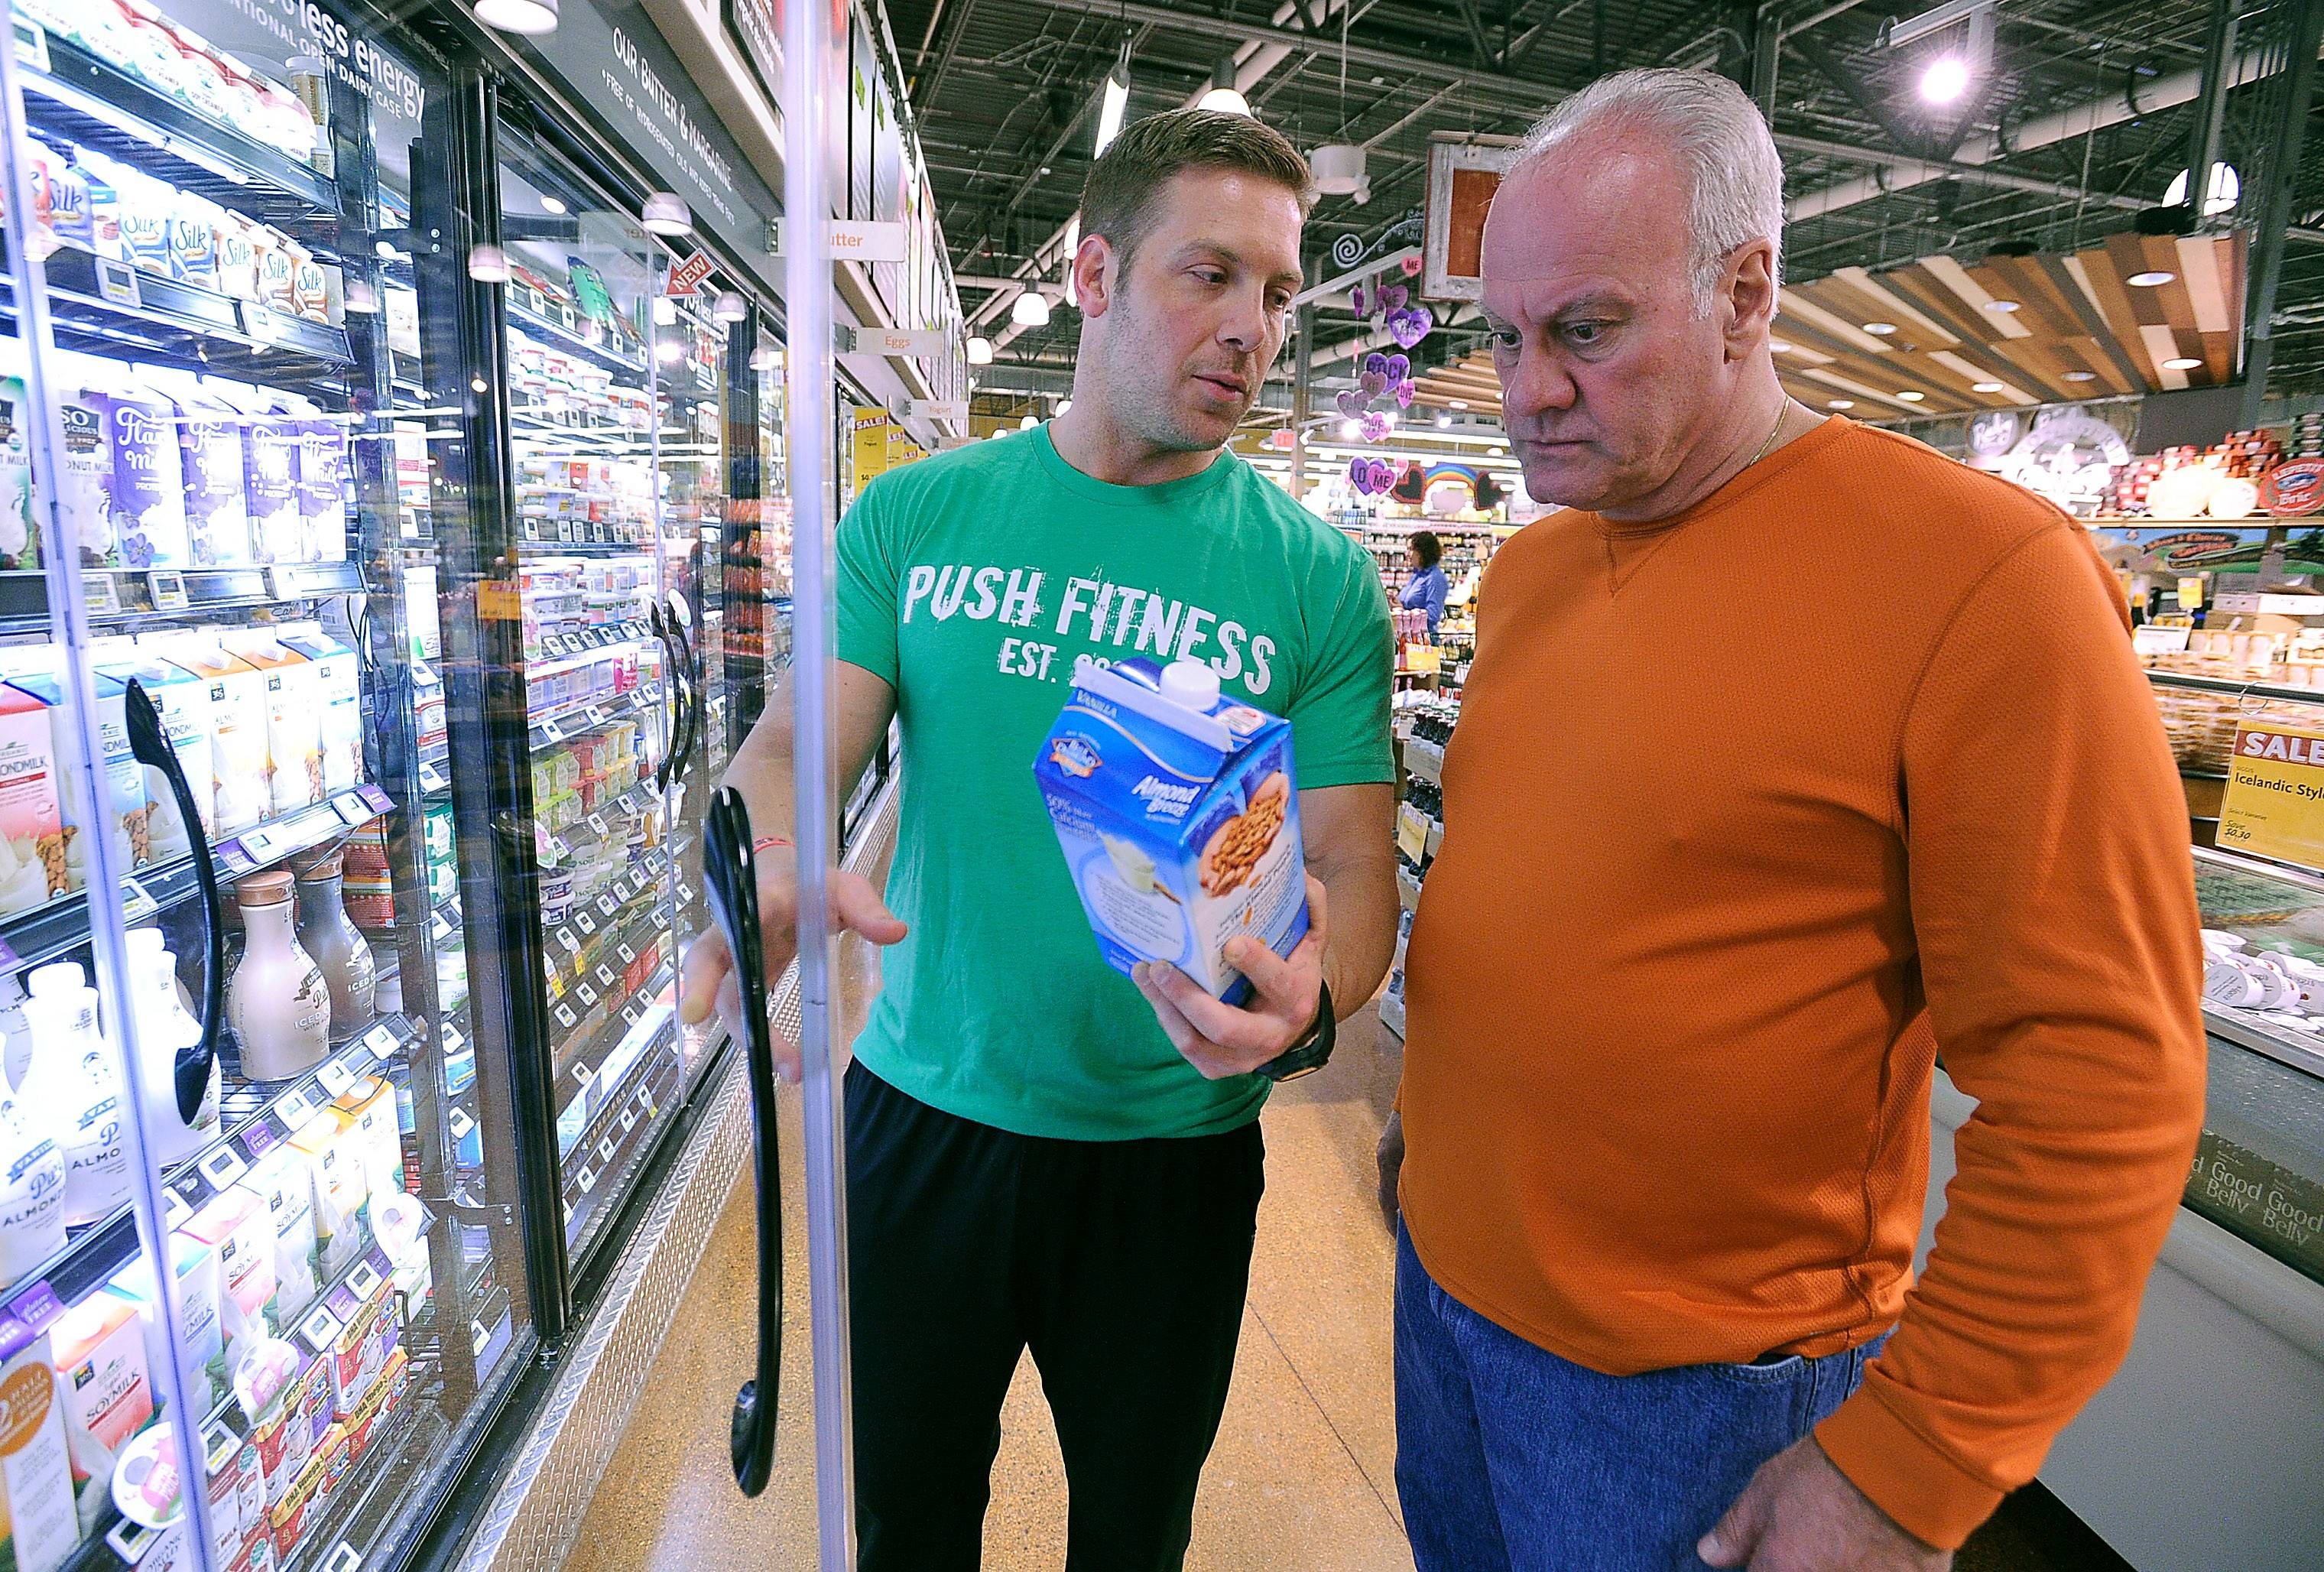 Trainer Brodie Medlock discusses healthy diet choices with Fittest Loser Chris Kalamatas at Whole Foods Market in Schaumburg.